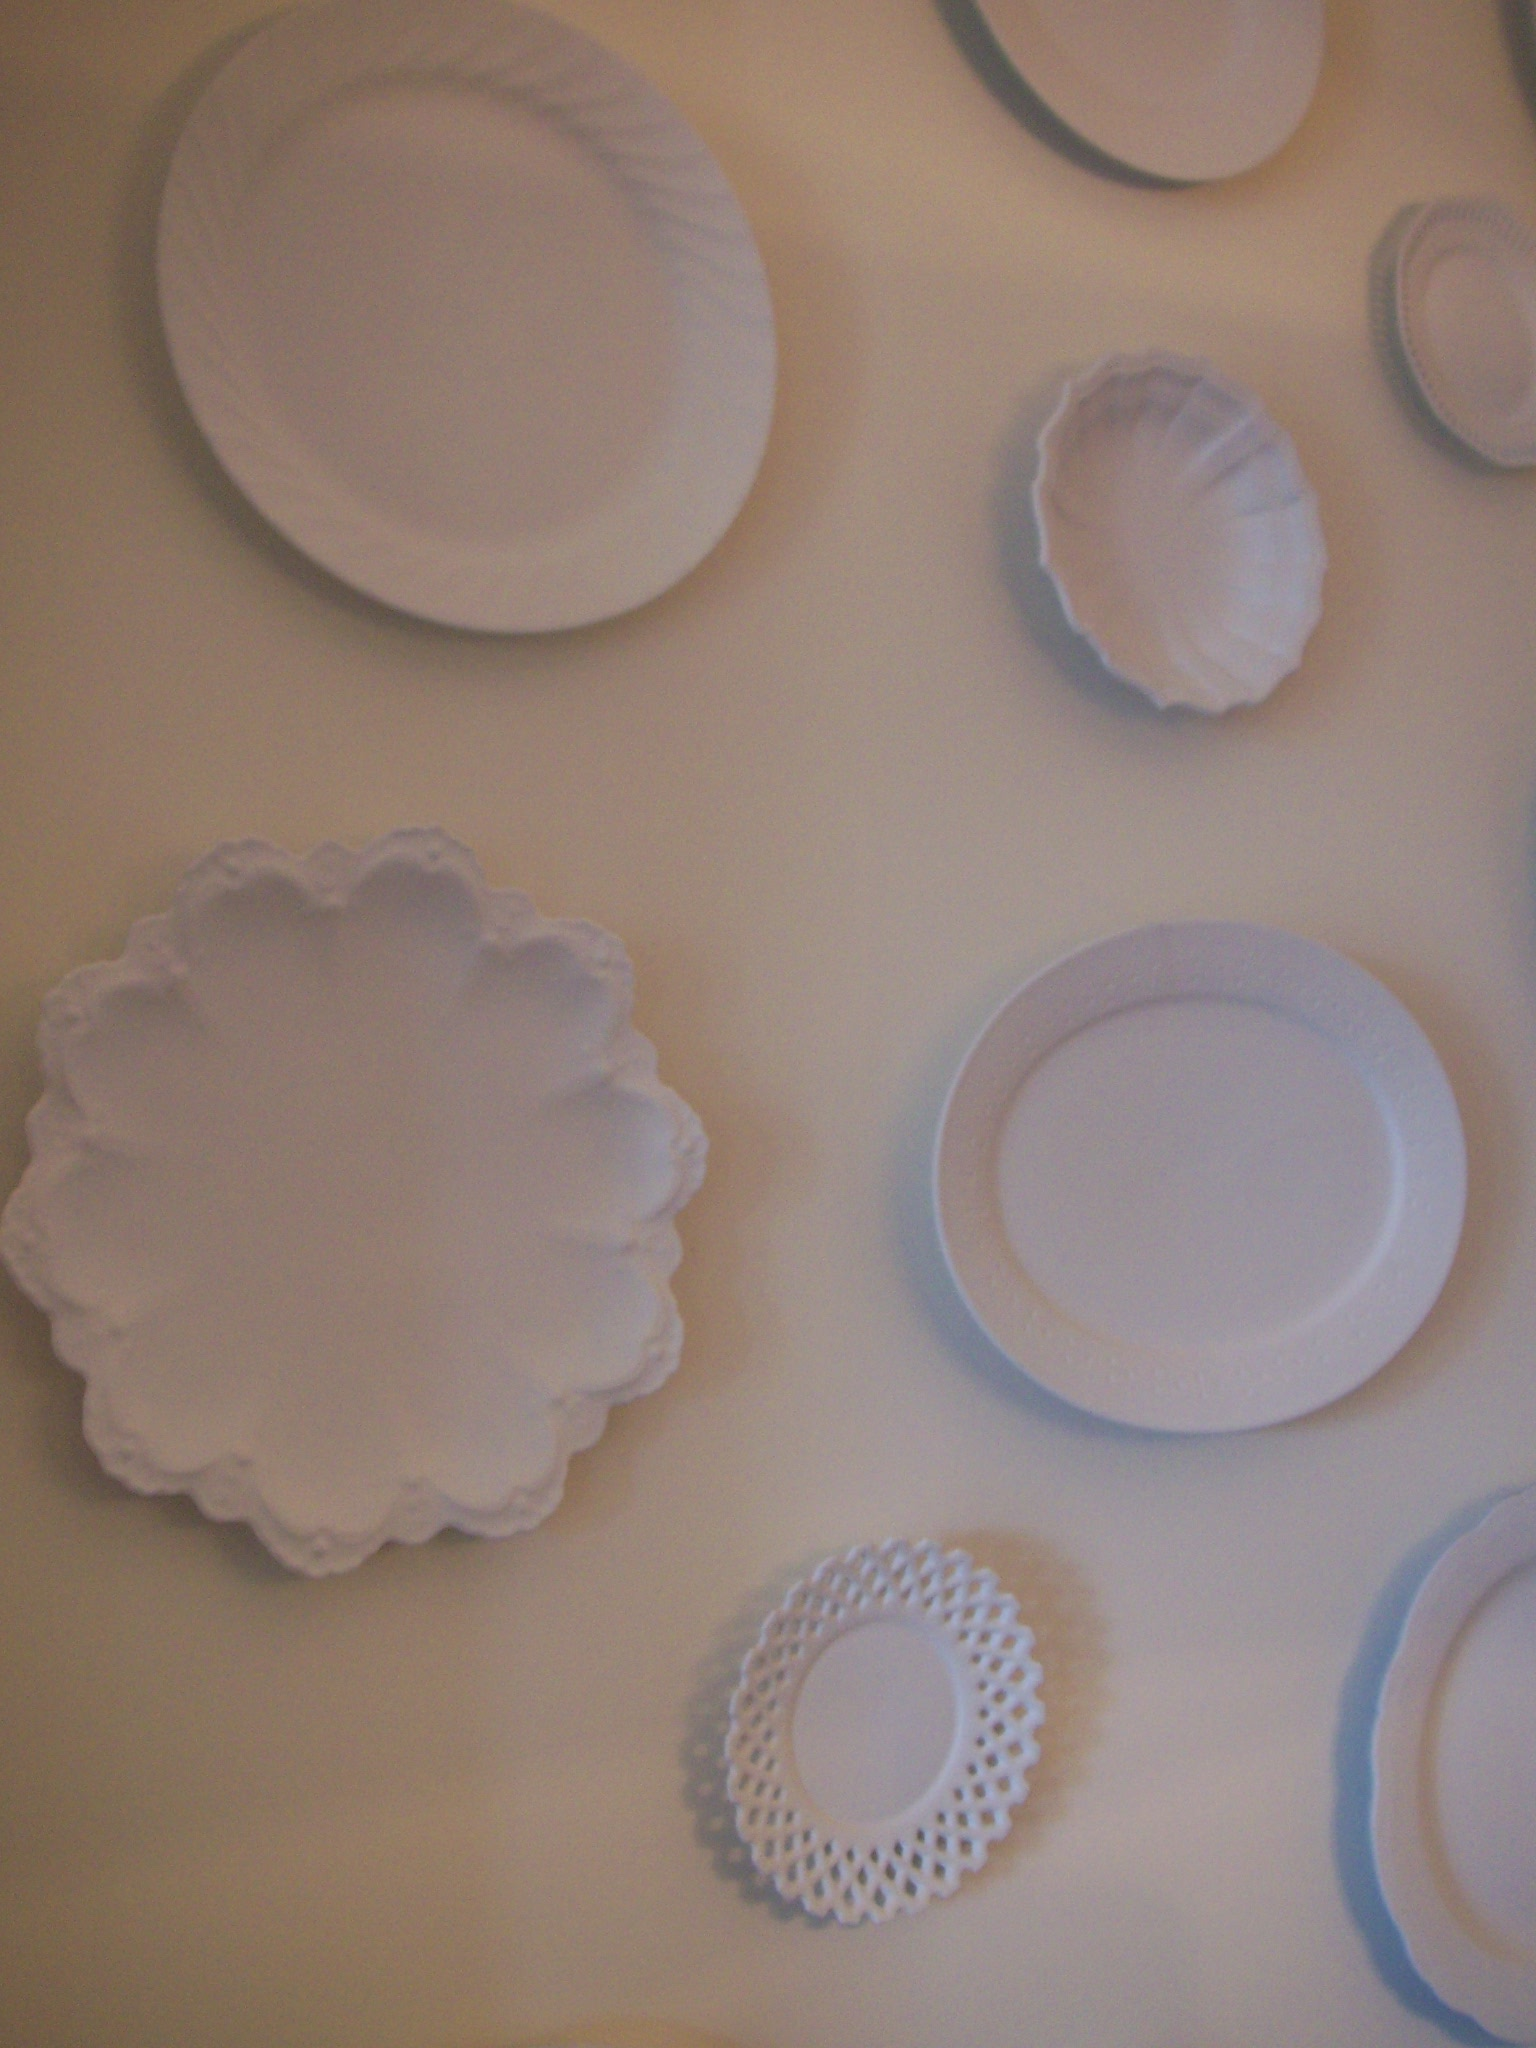 A close up of some of my favorite plates.